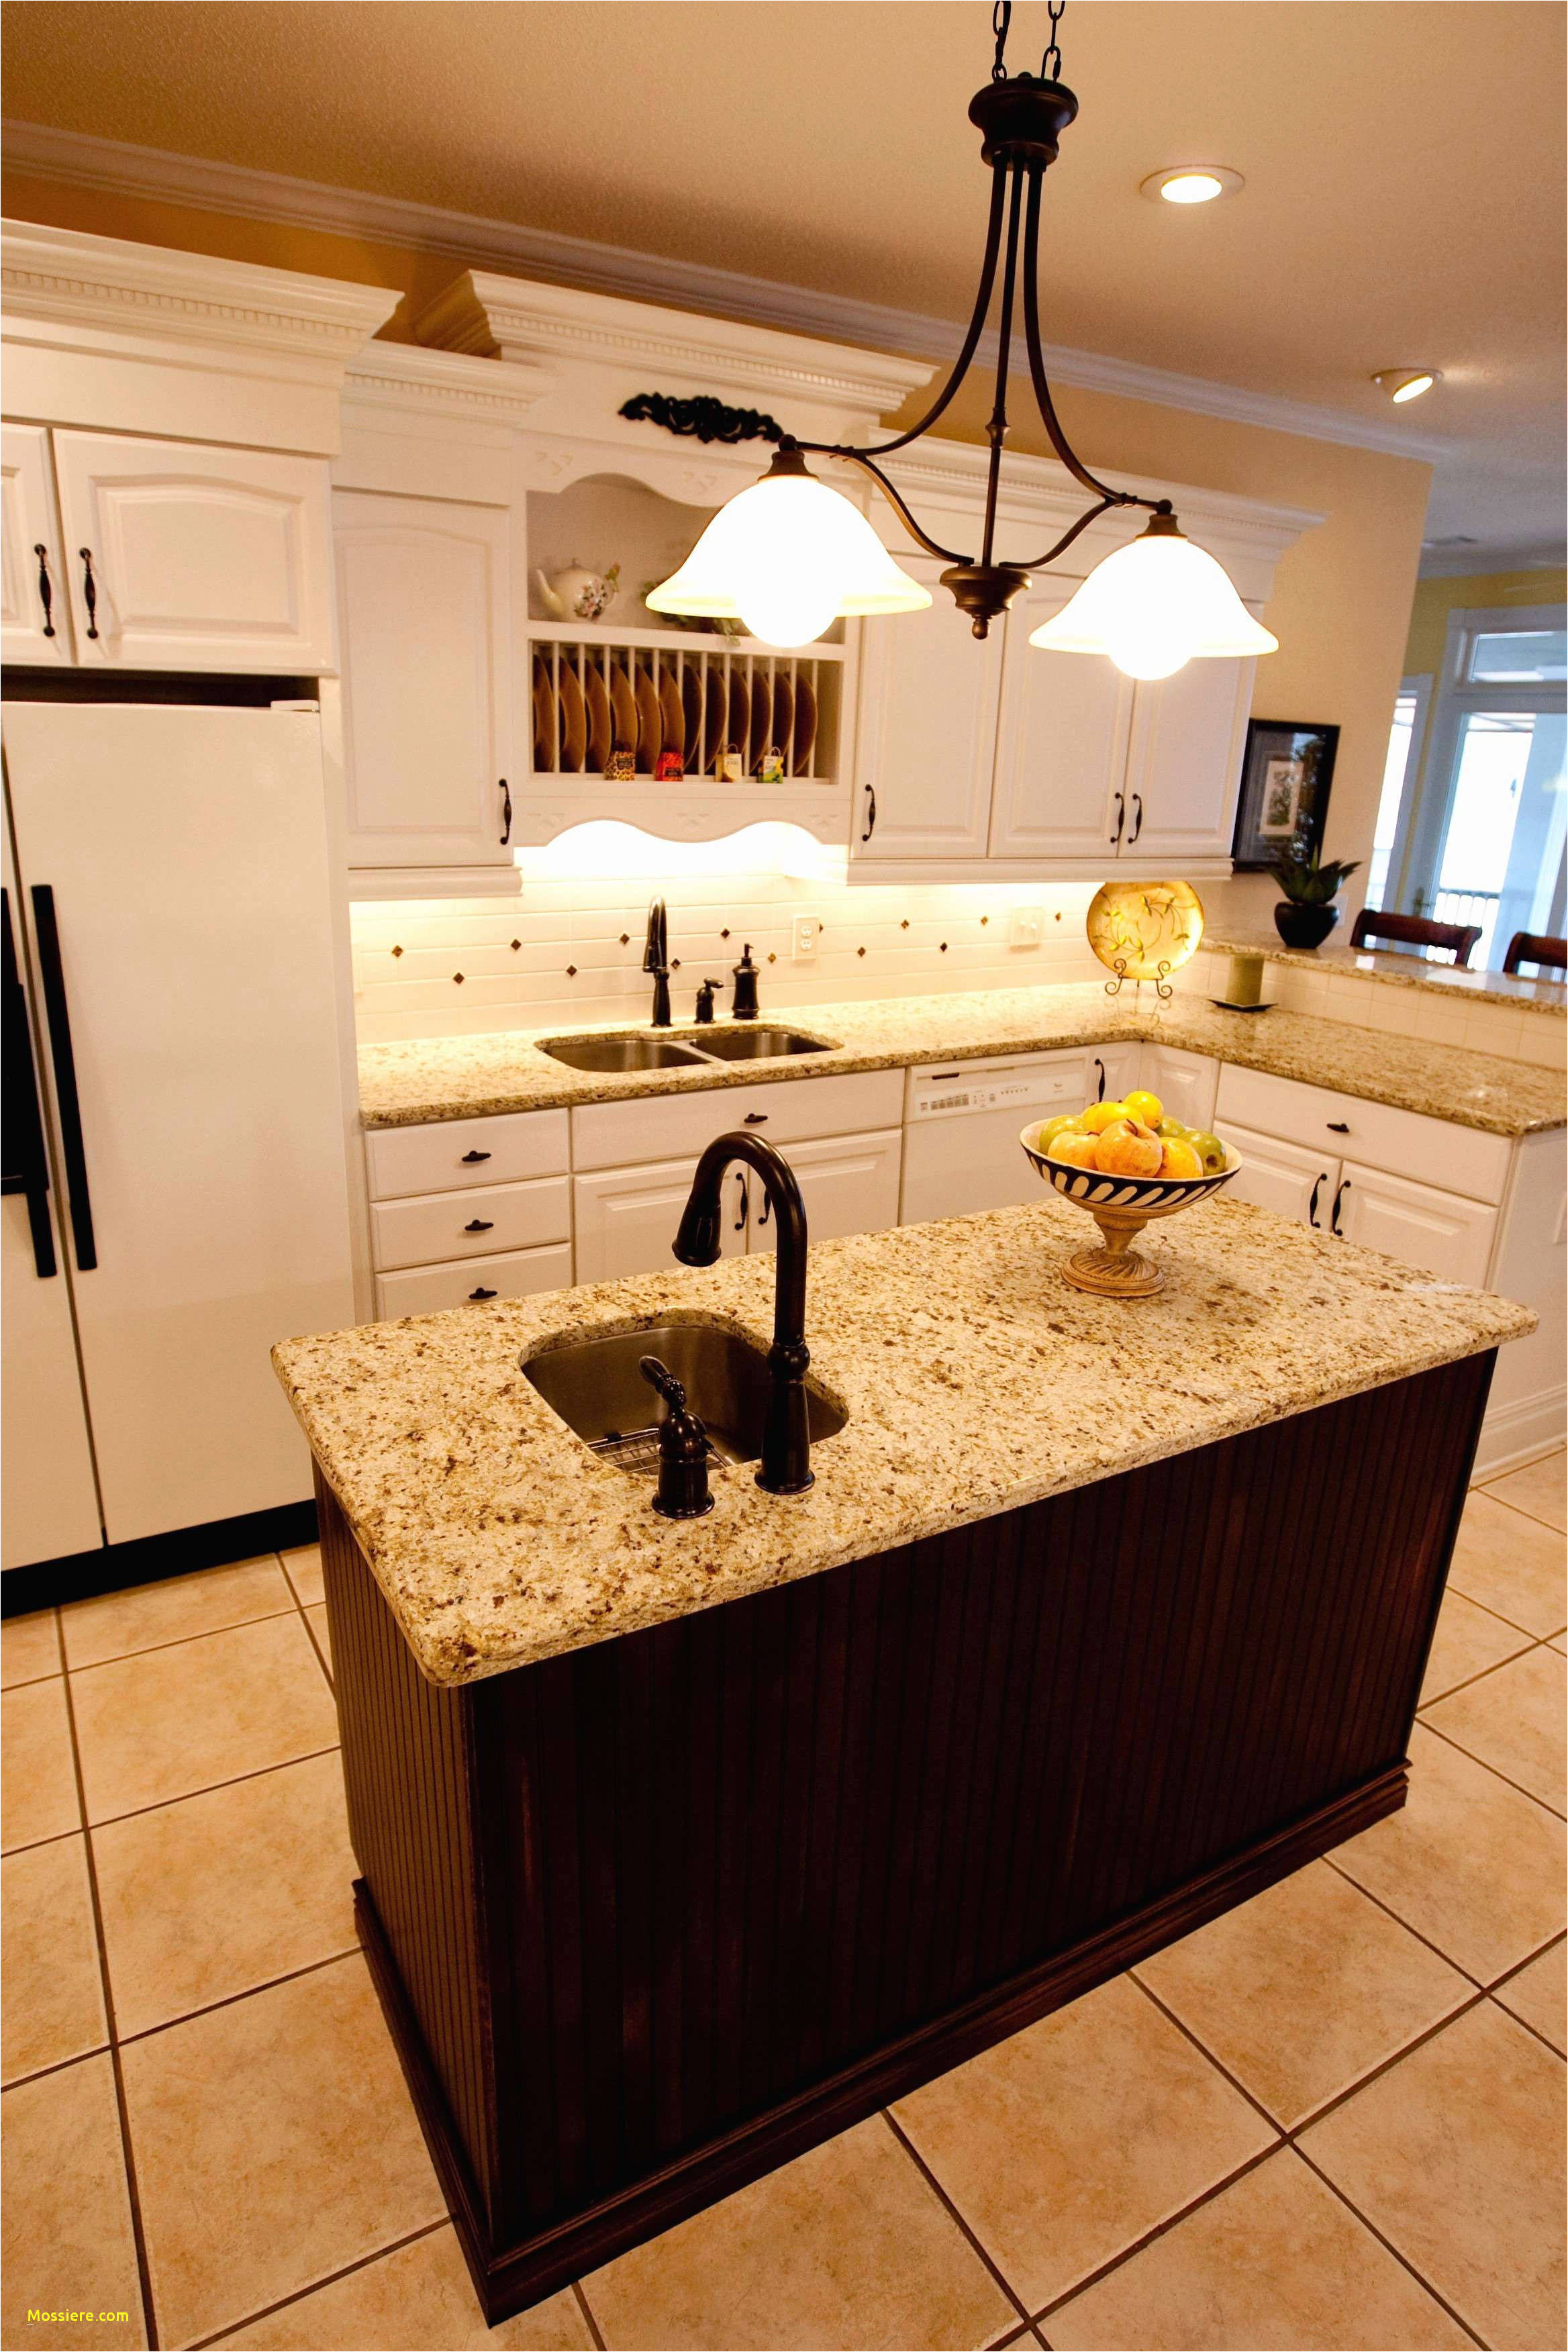 compare quartz vs granite countertops beautiful unique how thick should a granite countertop be